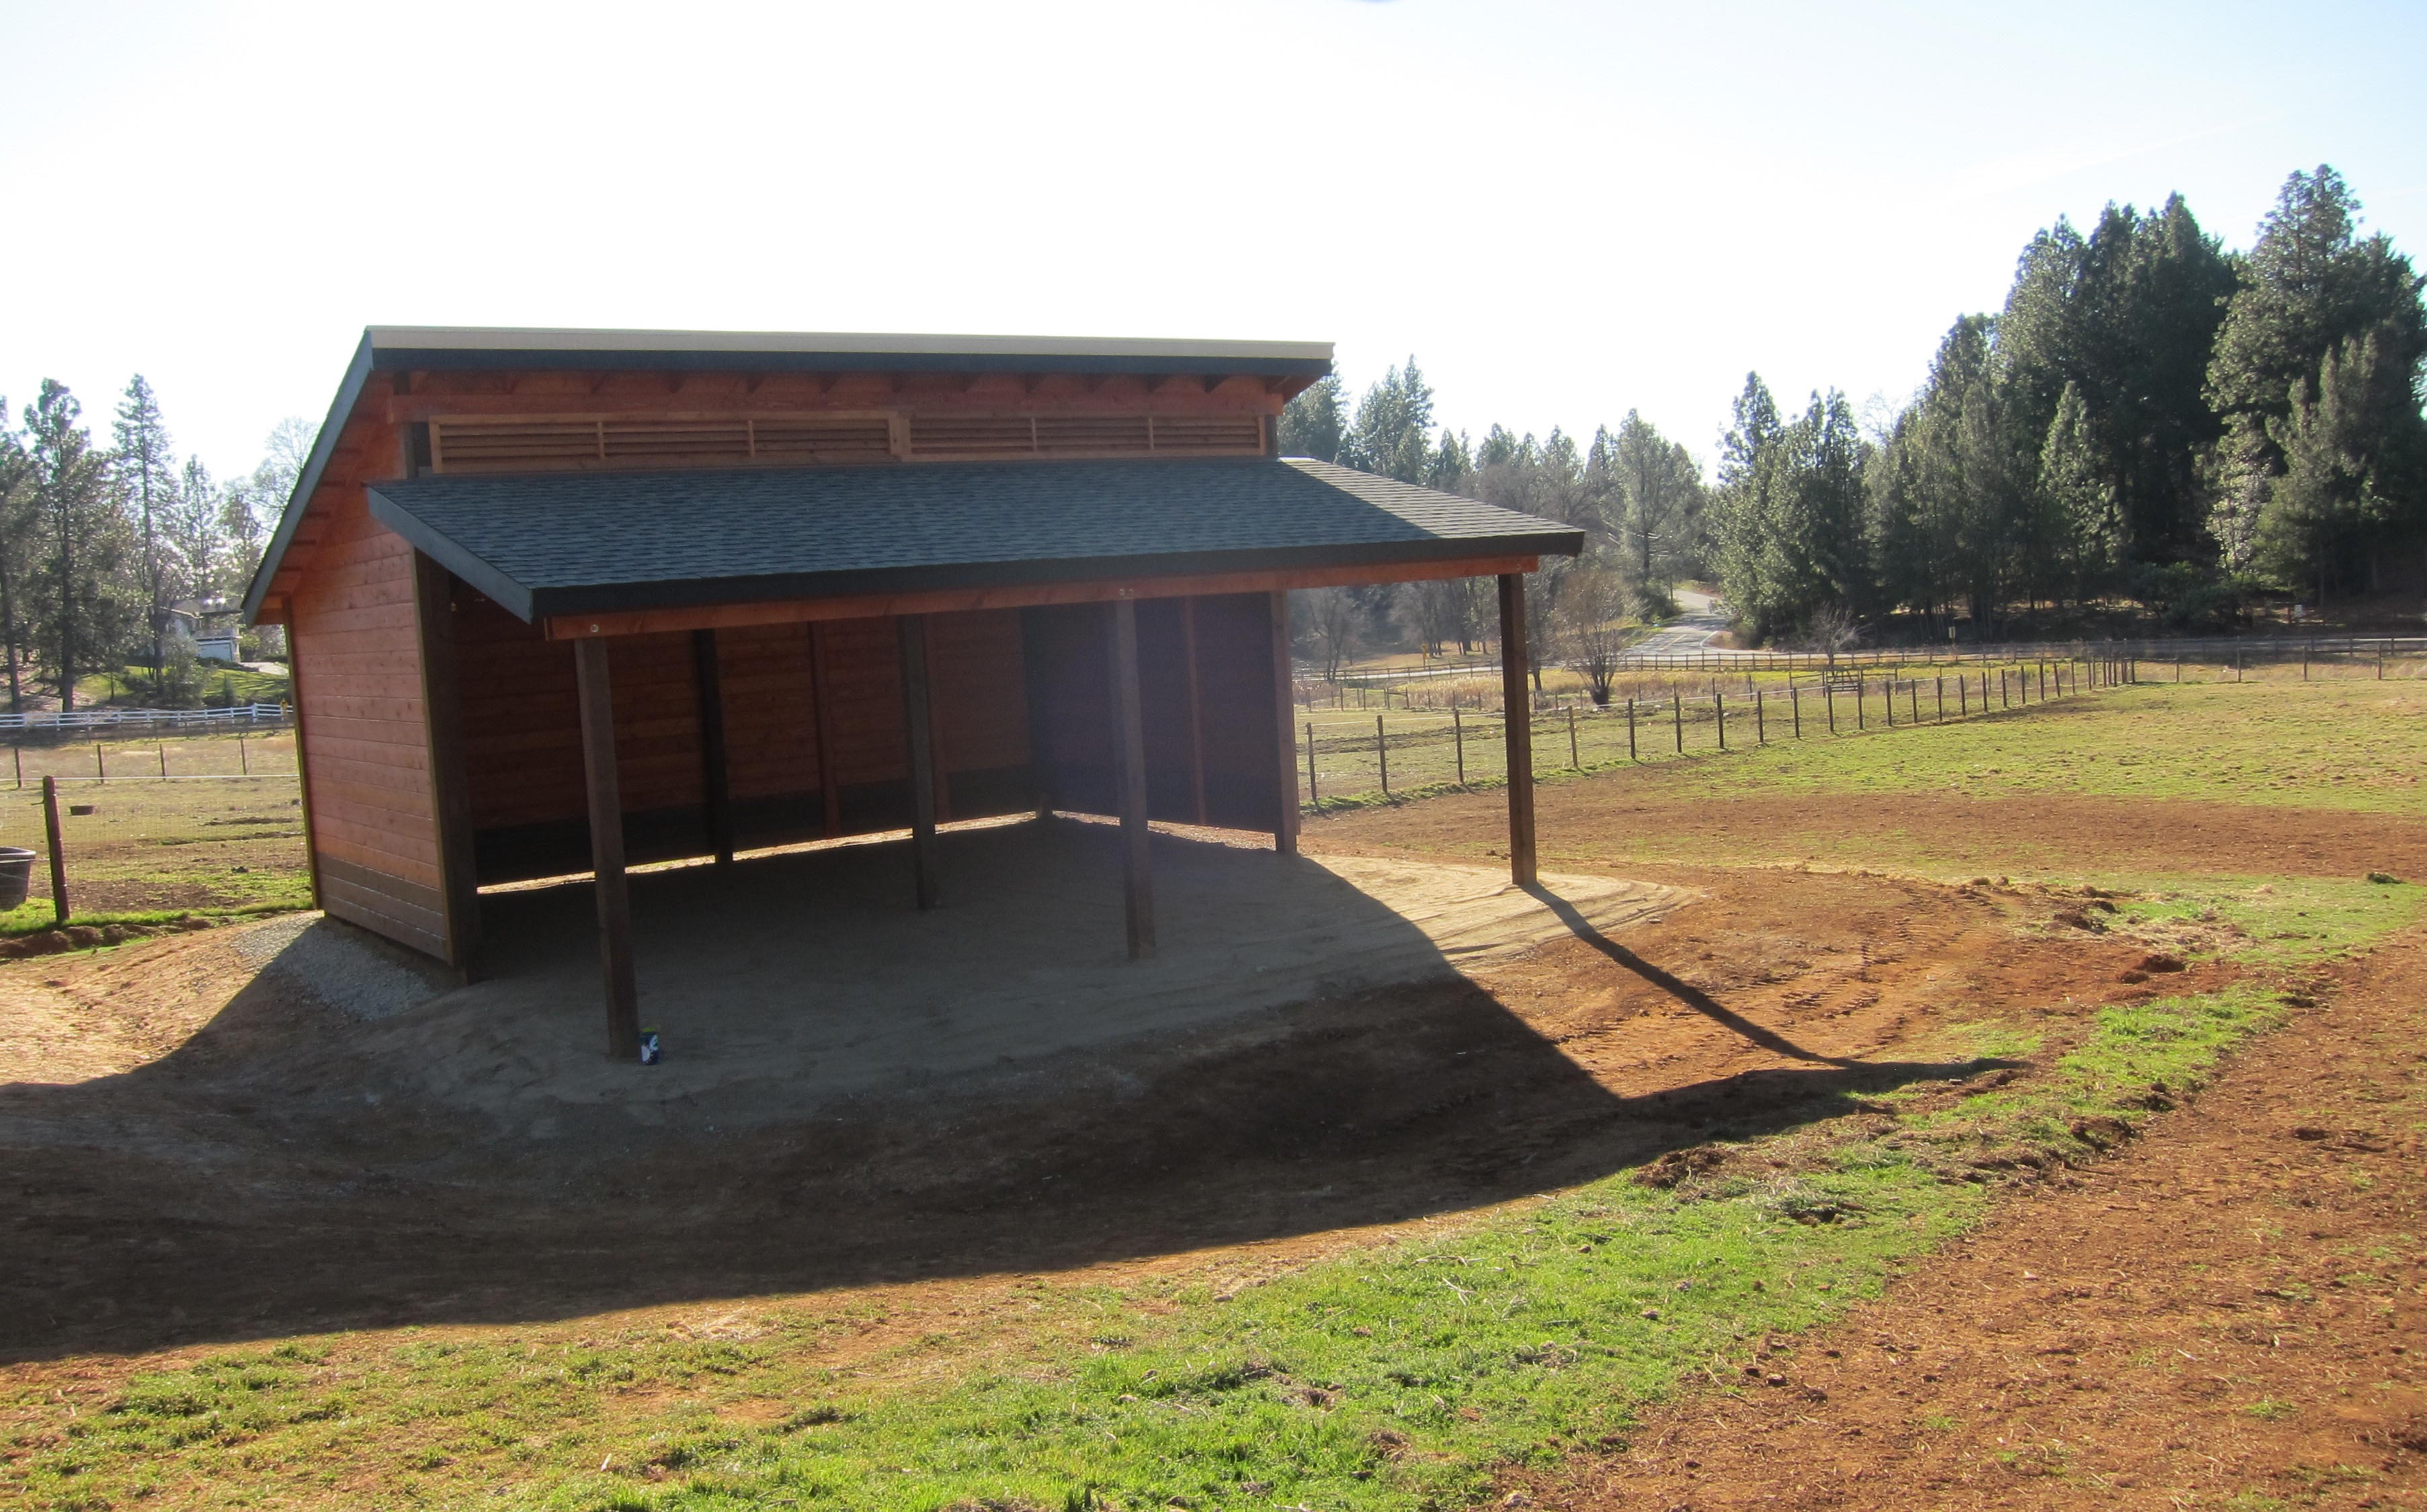 Horse Barns Do It Yourself : Diy horse shelter ideas do it your self